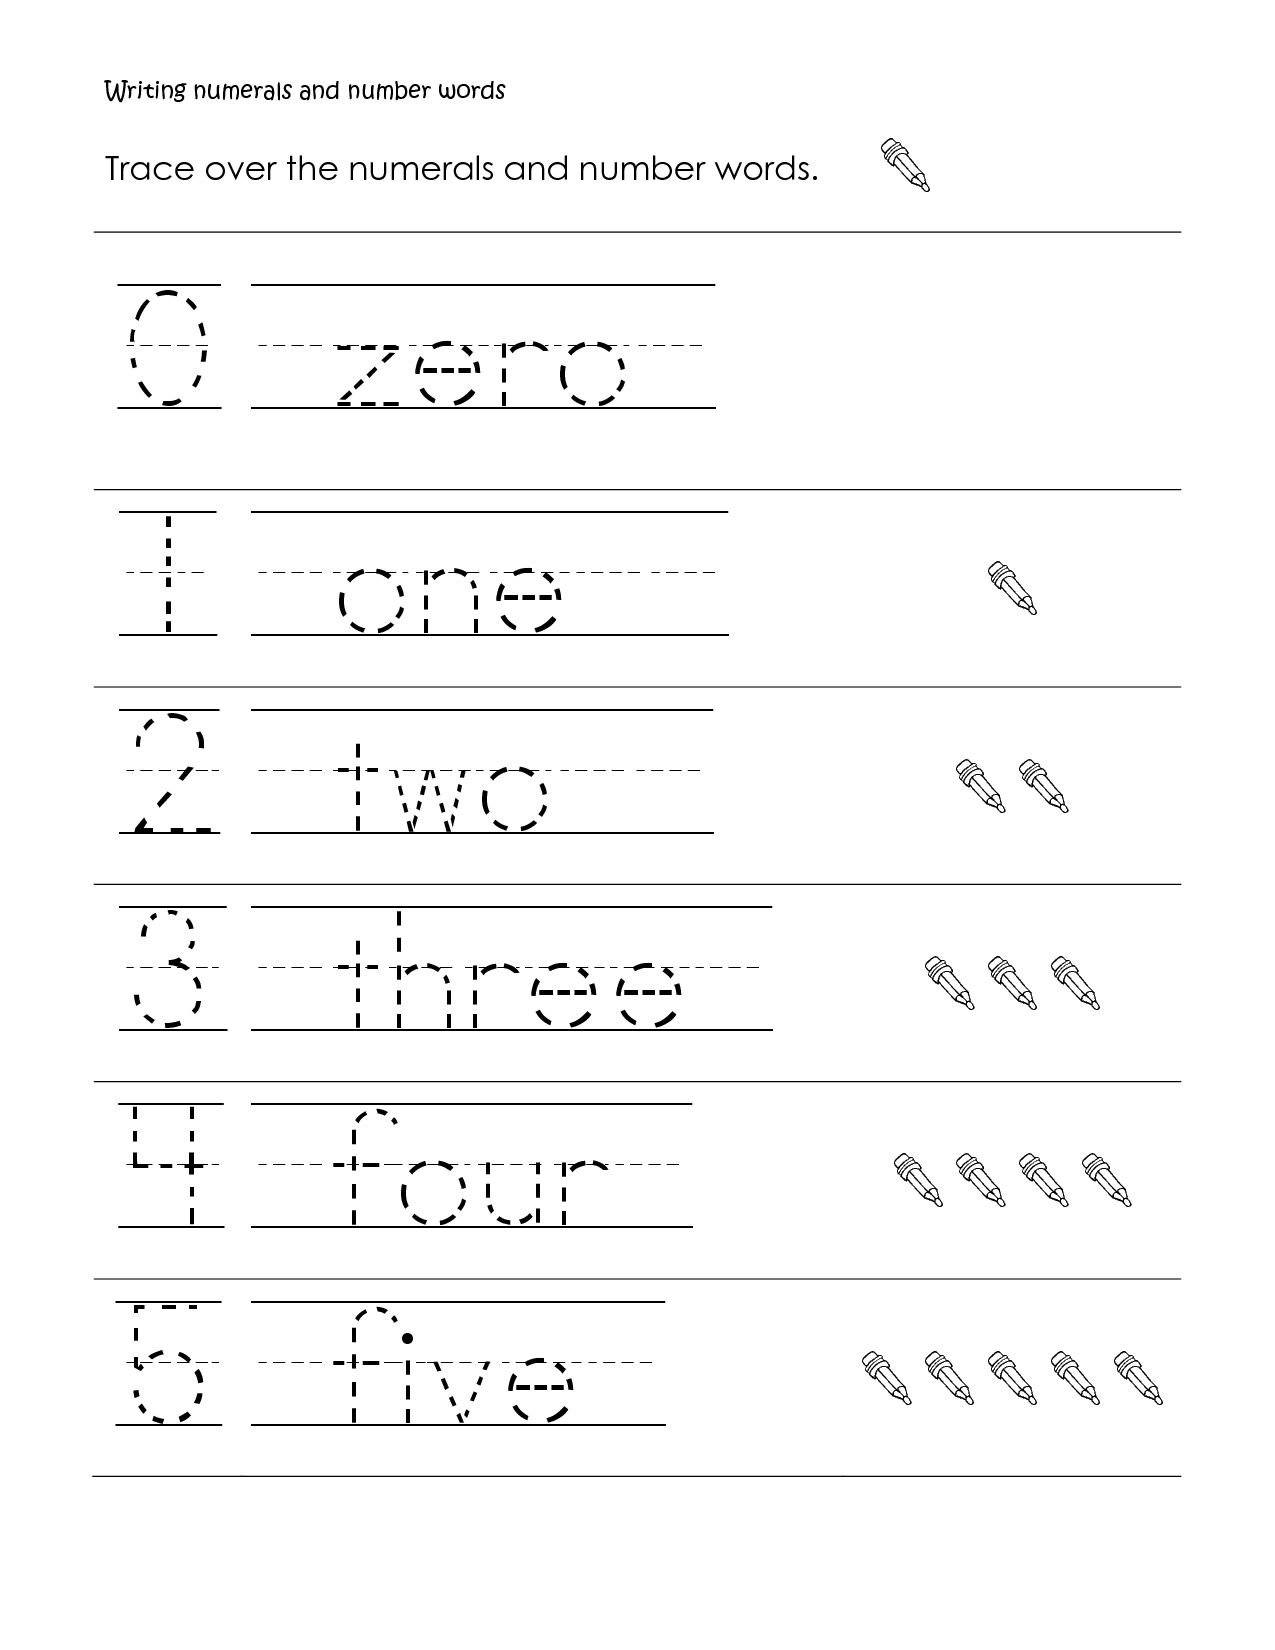 Worksheets Writing Worksheets For First Grade first grade handwriting worksheets printable pirates and math worksheet writing numbers number words 1st grade